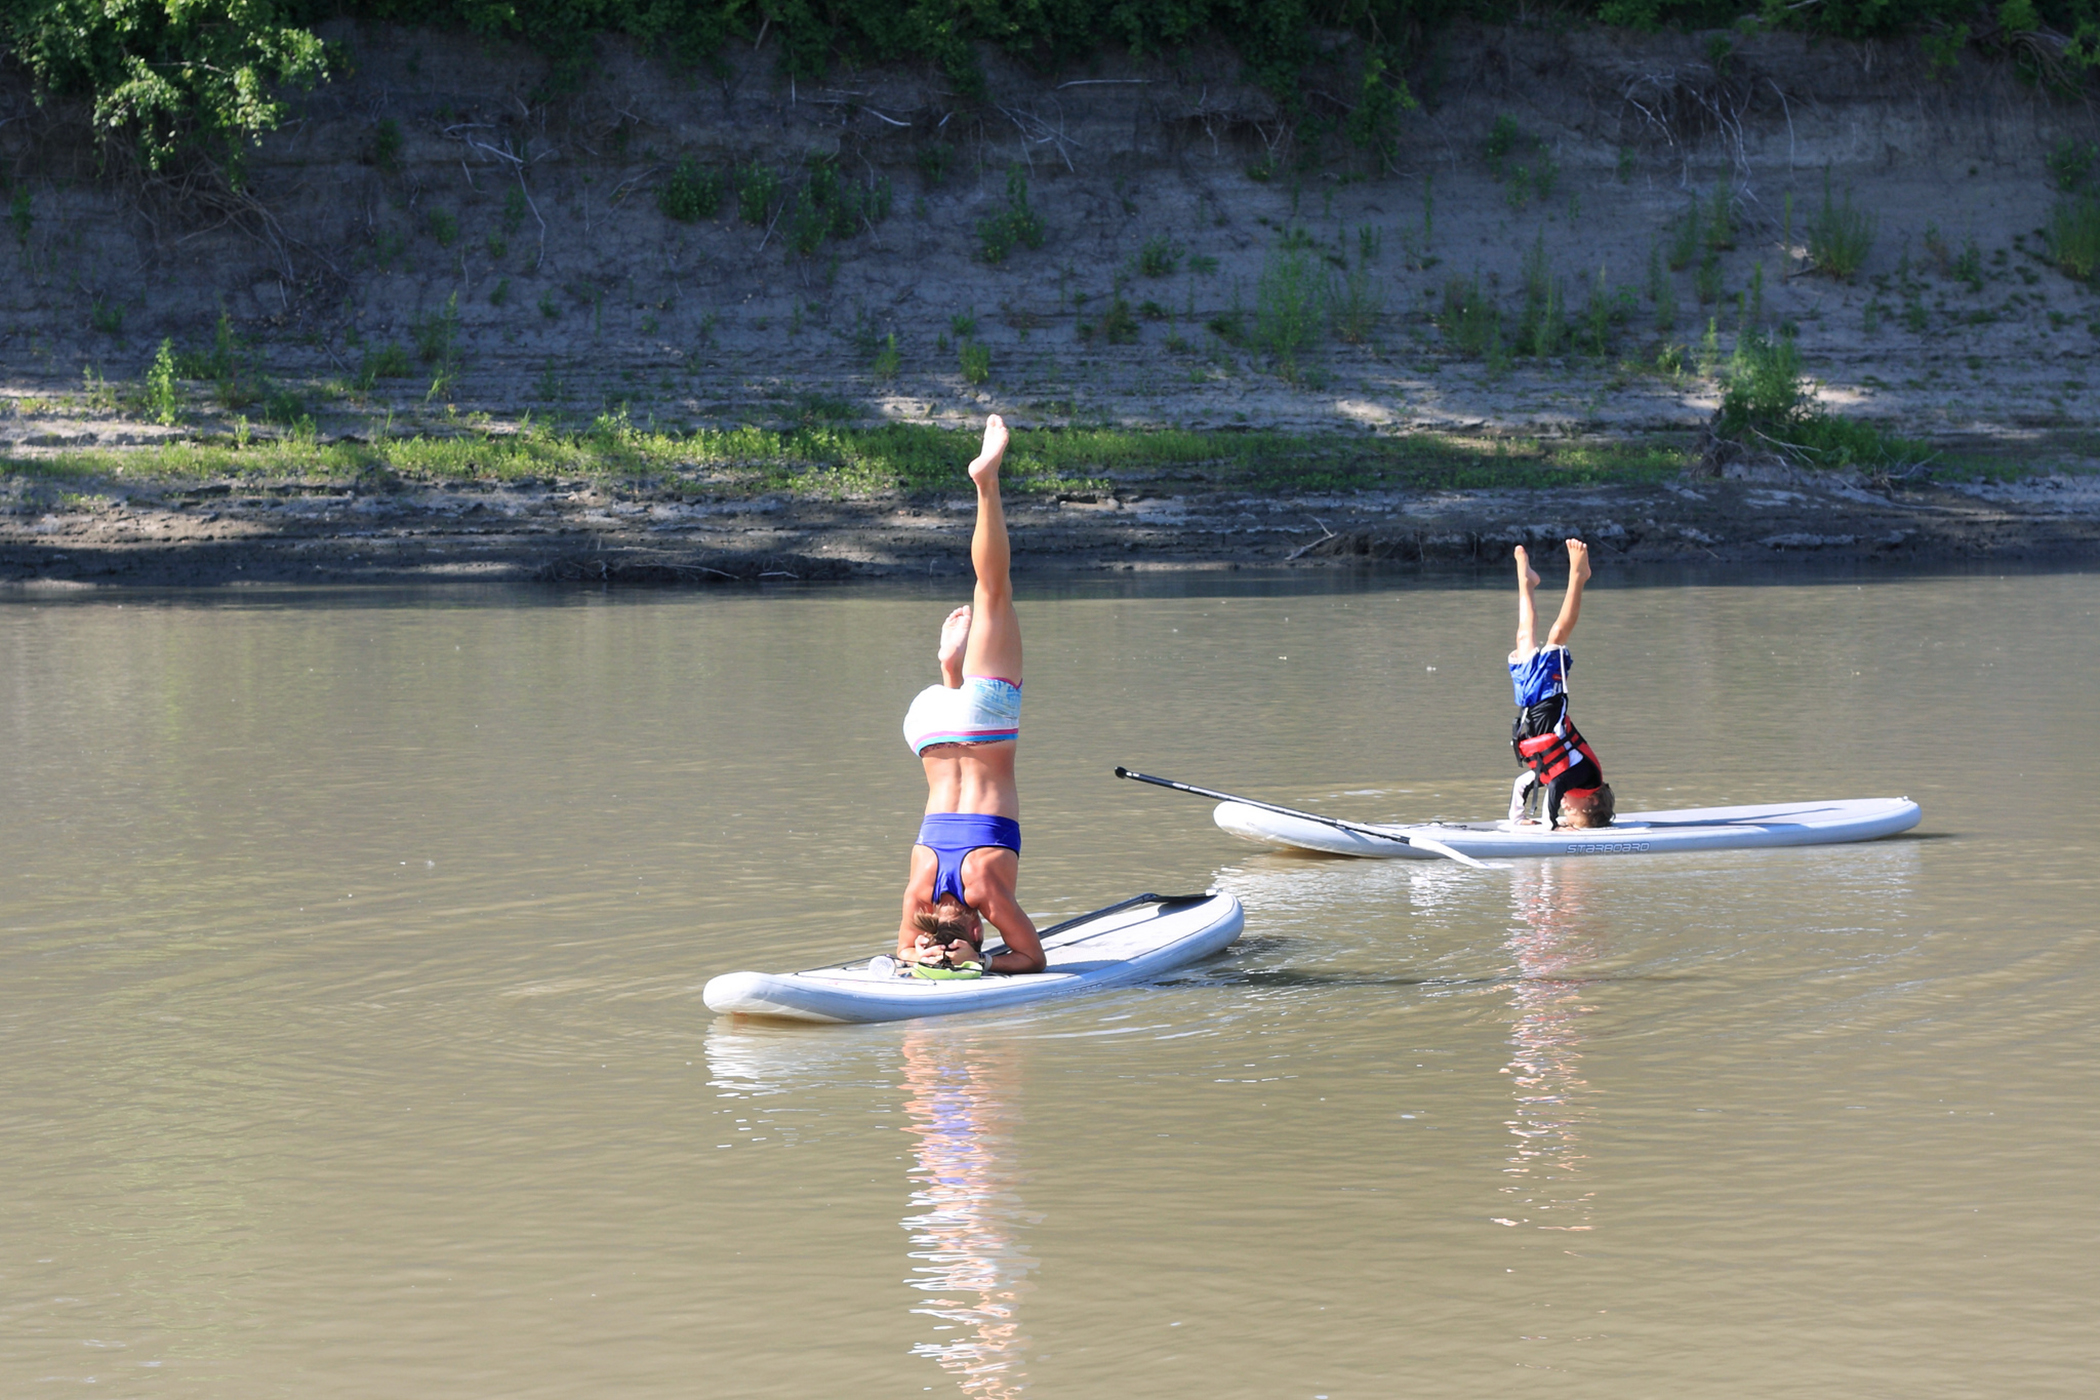 Grand Forks, North Dakota. Grand Forks is home to University of North Dakota, the Grand Forks Air Force Base, and a slice of the Red River, which is itself occasionally host to some very talented yoga practitioners.